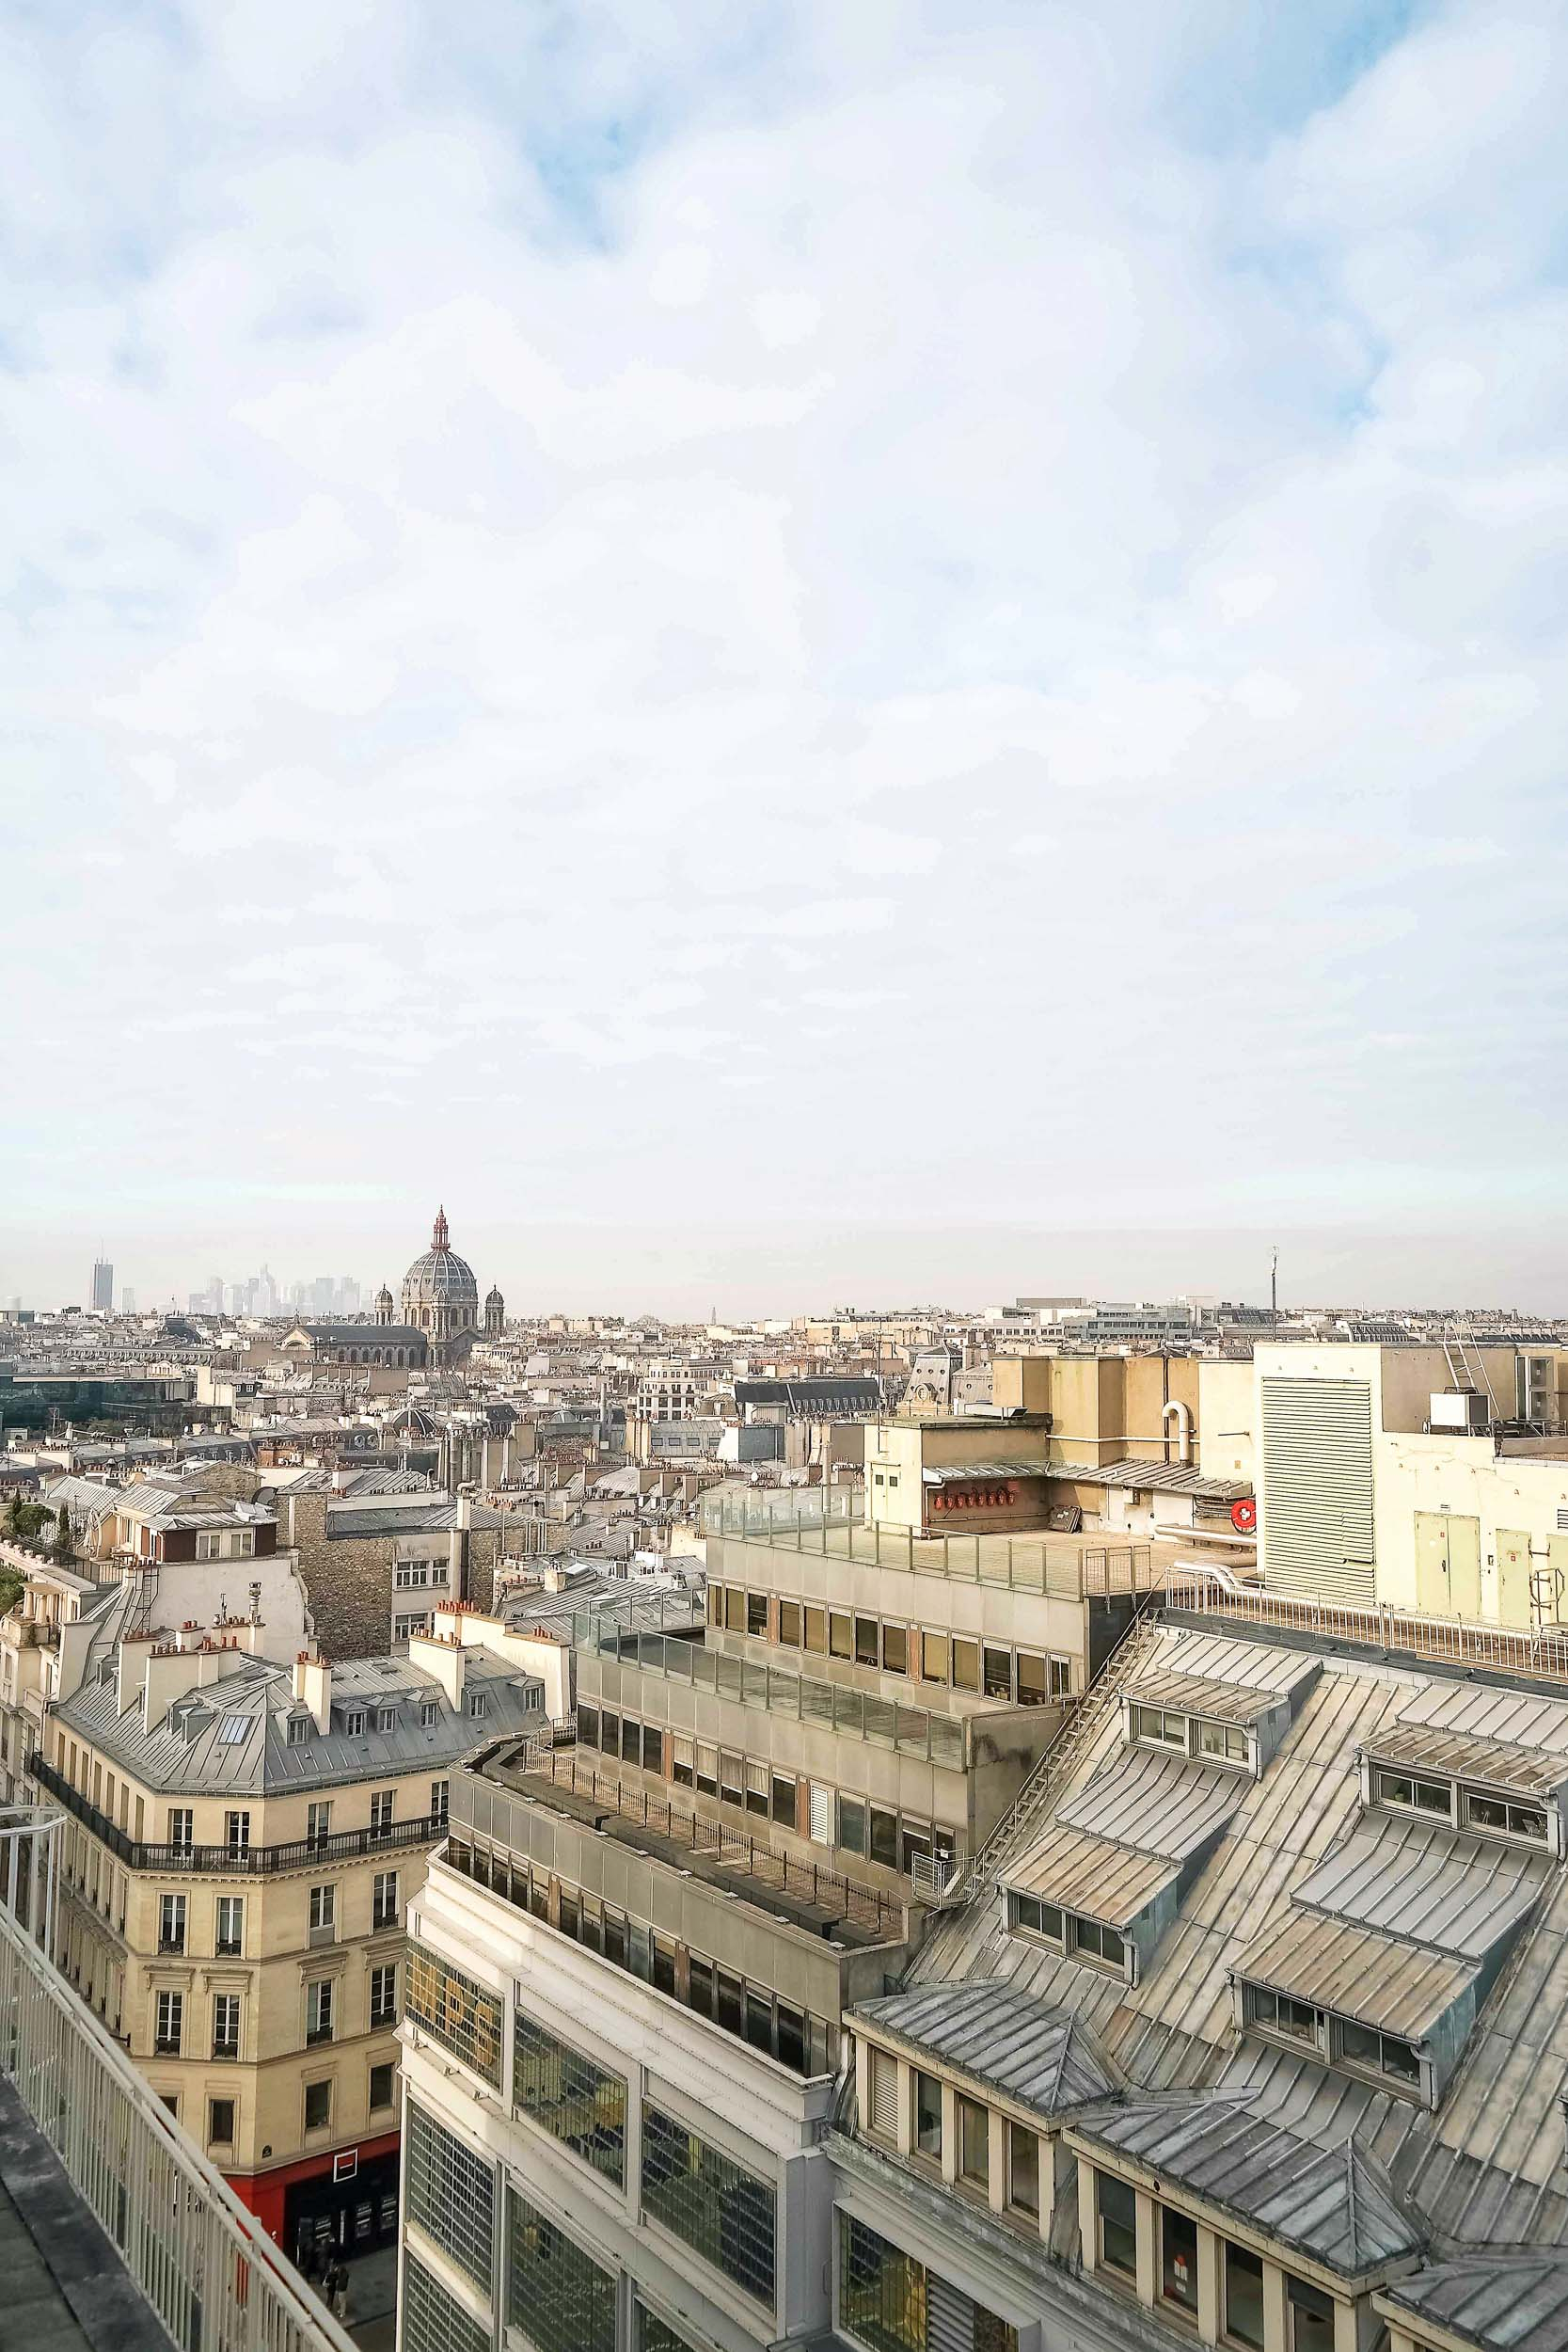 Clear skies and views of Paris in December